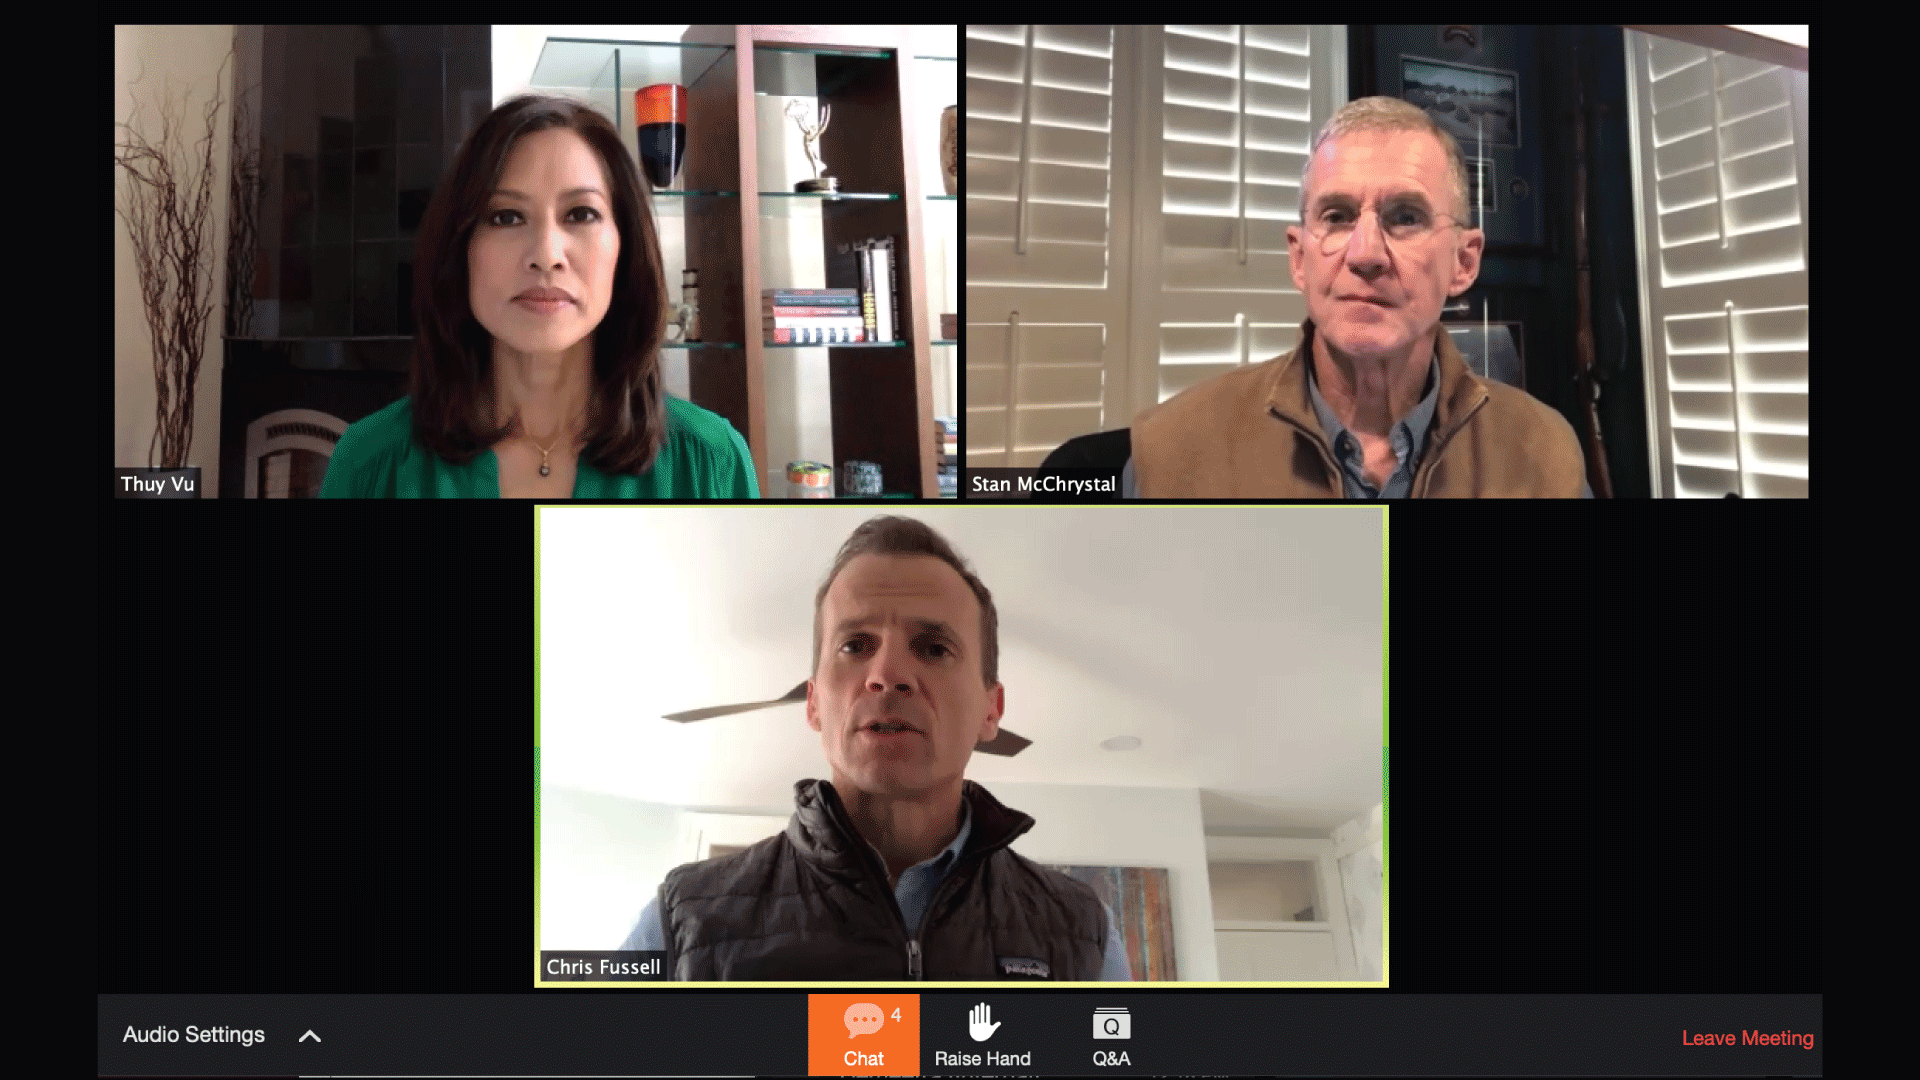 Stan McChrystal and Chris Fussell of the McChrystal Group, with Thuy Vu, Global Mentor Network